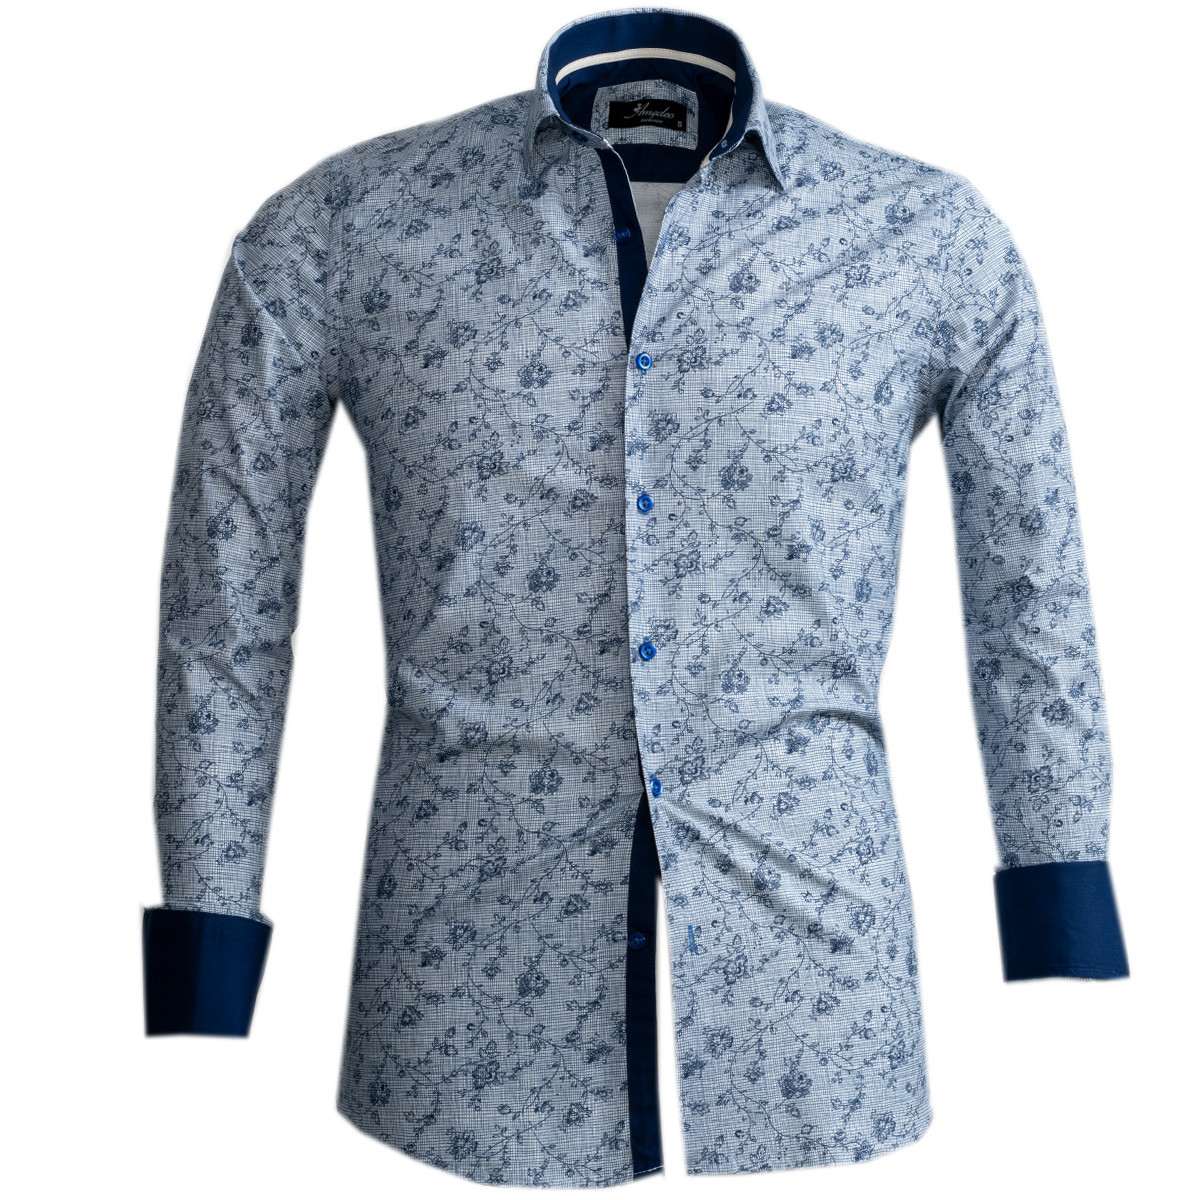 European Made & Designed Reversible Cuff Premium French Cuff Dress Shirt - light blue and navy